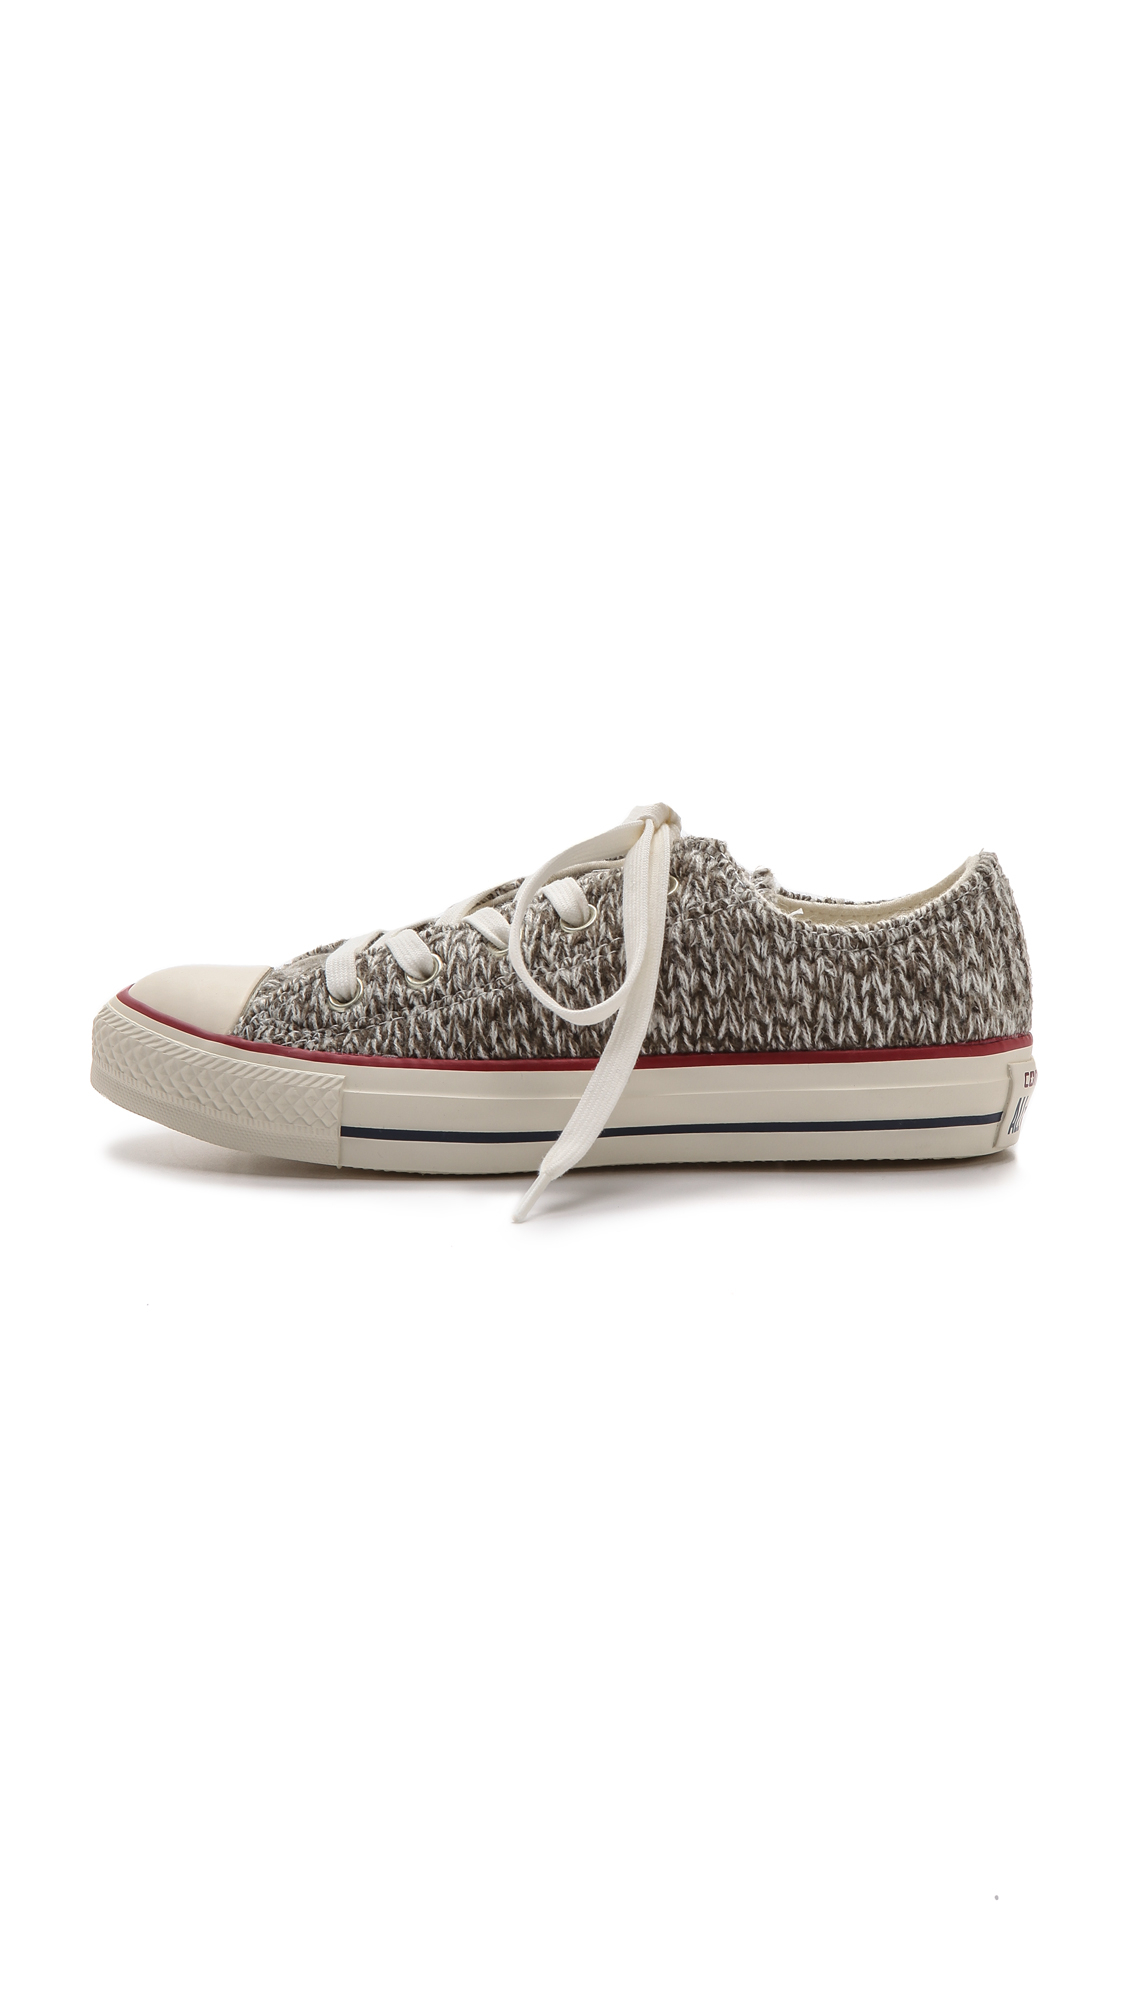 6b01624e9717 Lyst - Converse Chuck Taylor All Star Winter Knit Sneakers ...